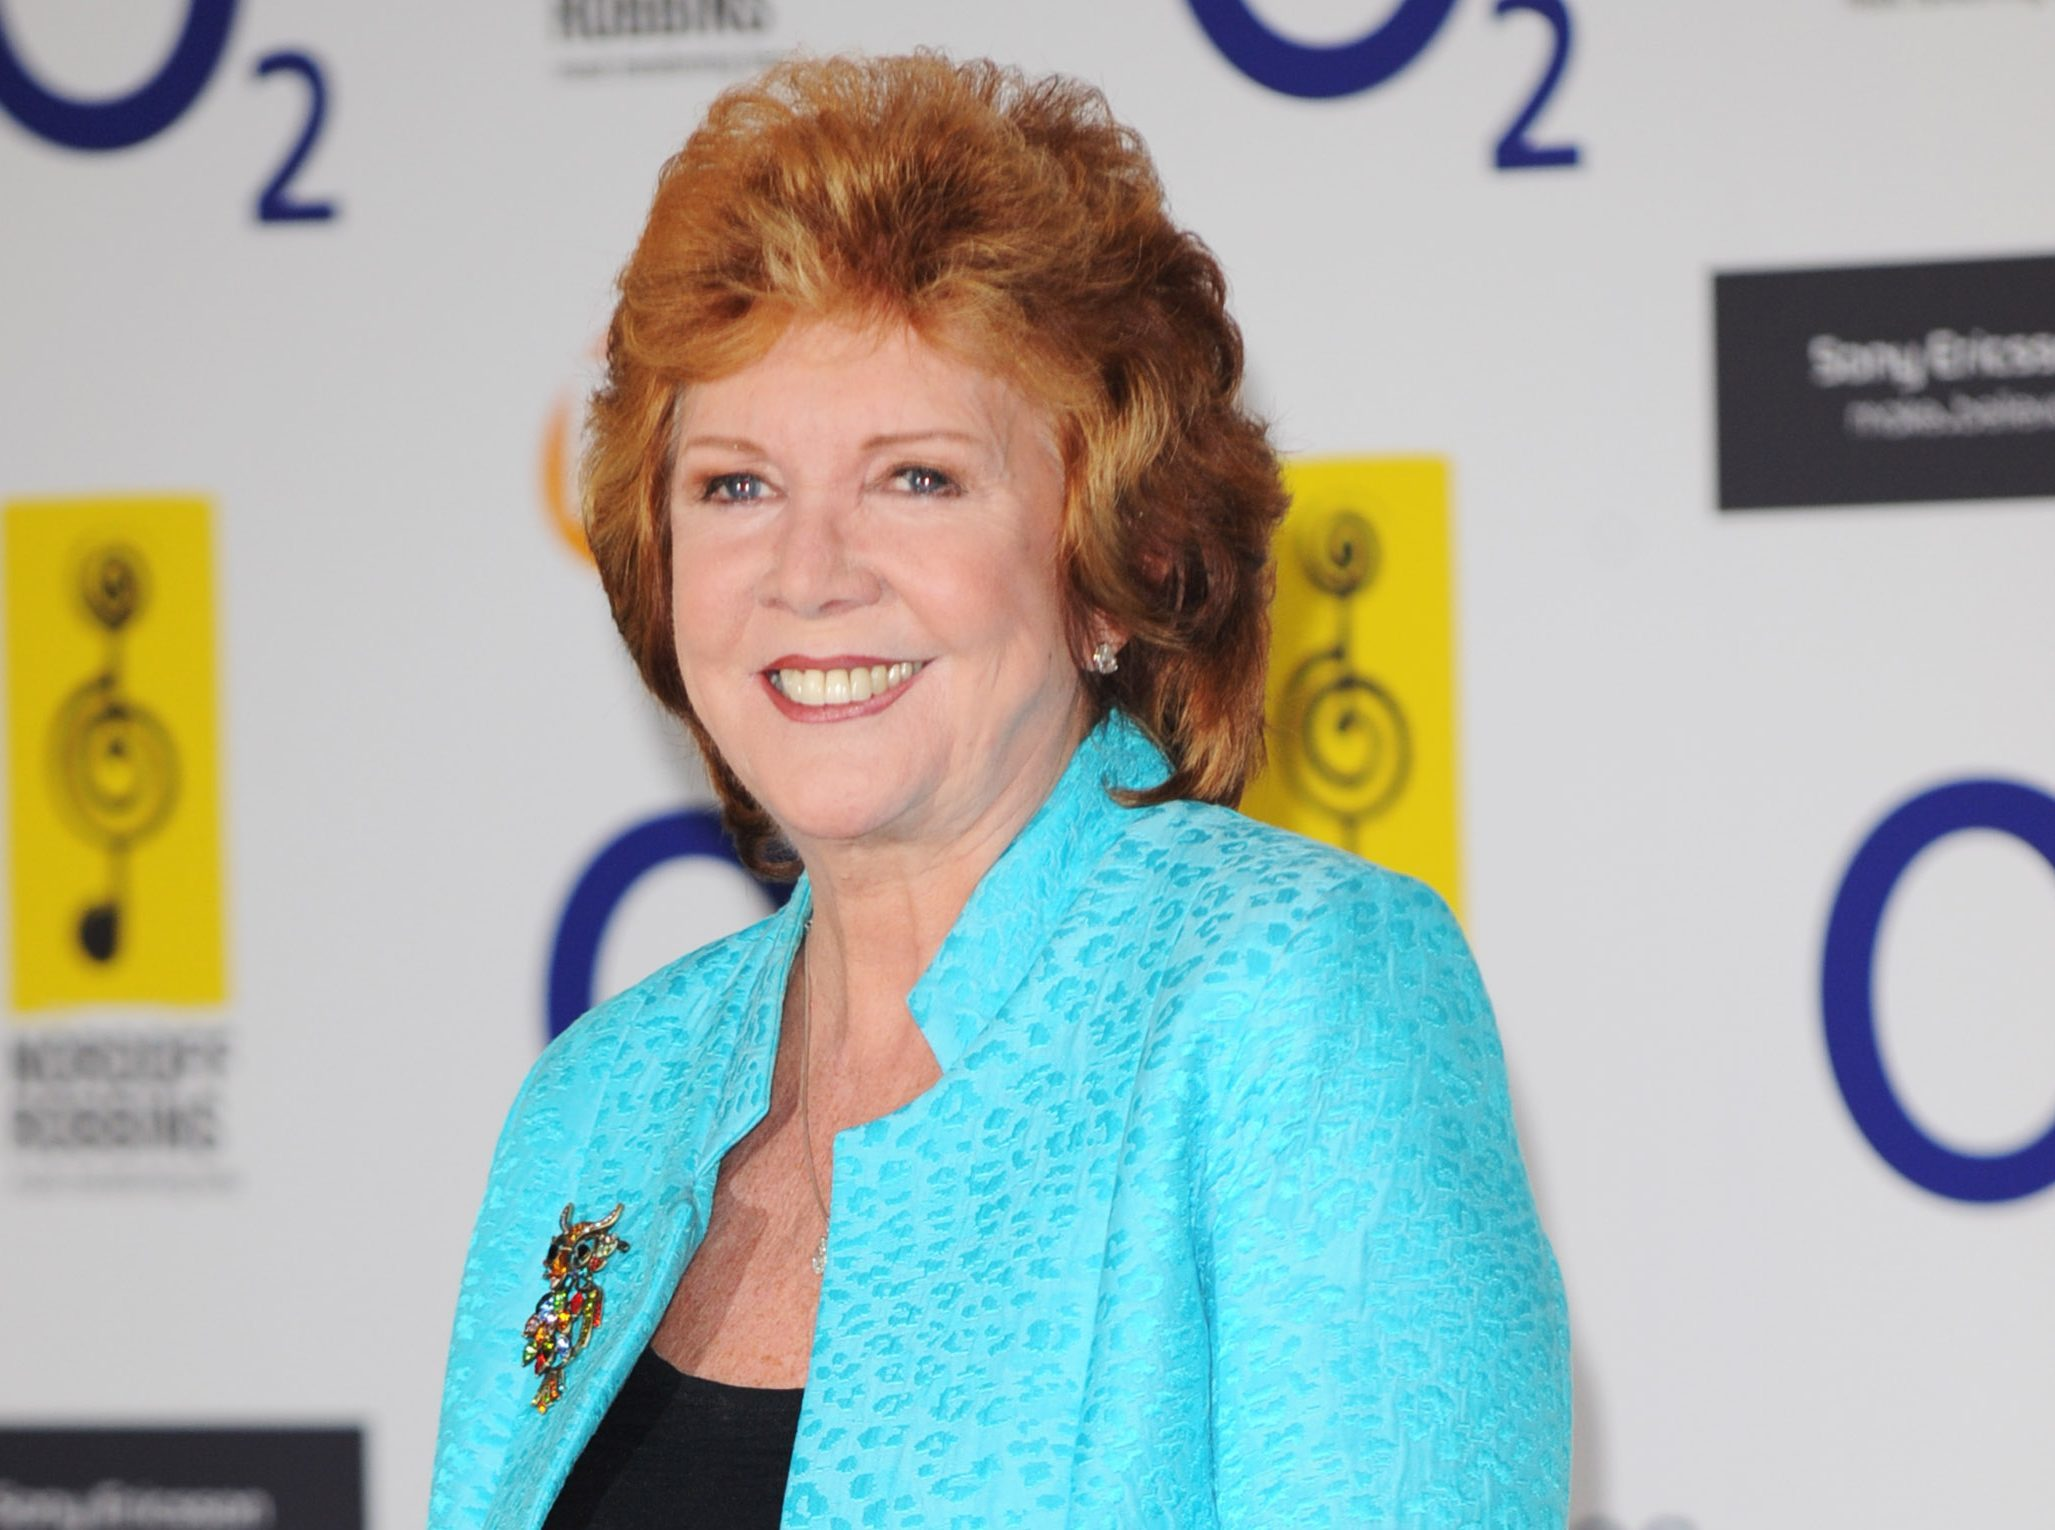 Newcomer Kara Lily Hayworth met Cilla Black when she was 11 (Stuart Wilson/Getty Images)